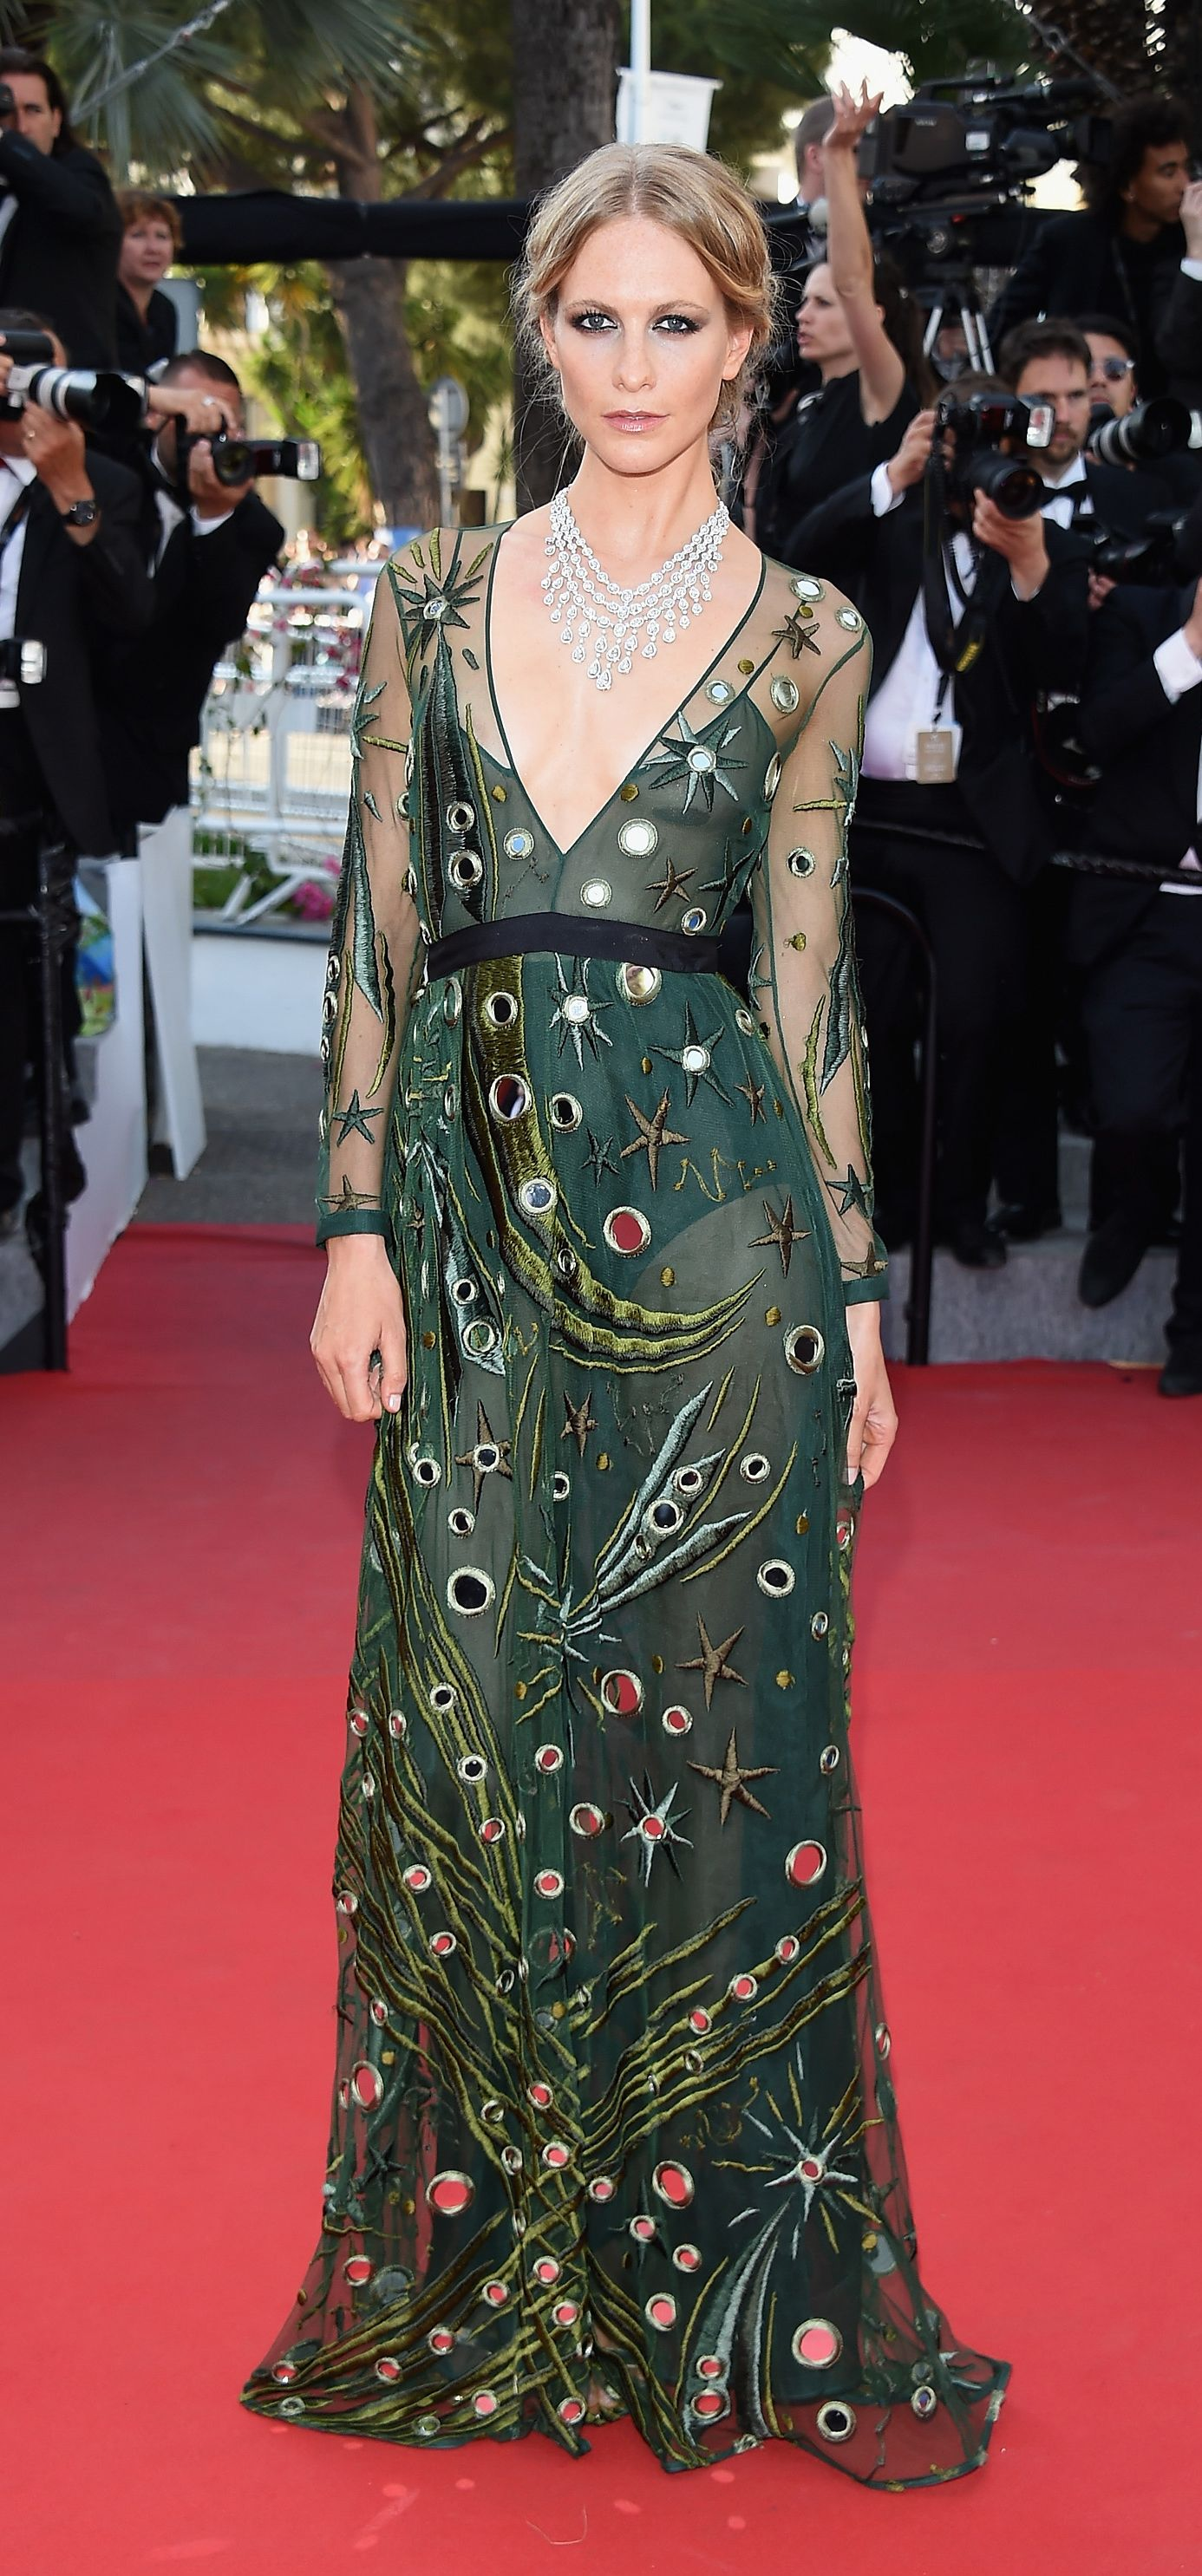 British Model Poppy Delevingne Wearing A Burberry Gown On The Cannes Red Carpet For The Premiere Of Carol Fashion Celebrity Red Carpet Black Tie Attire